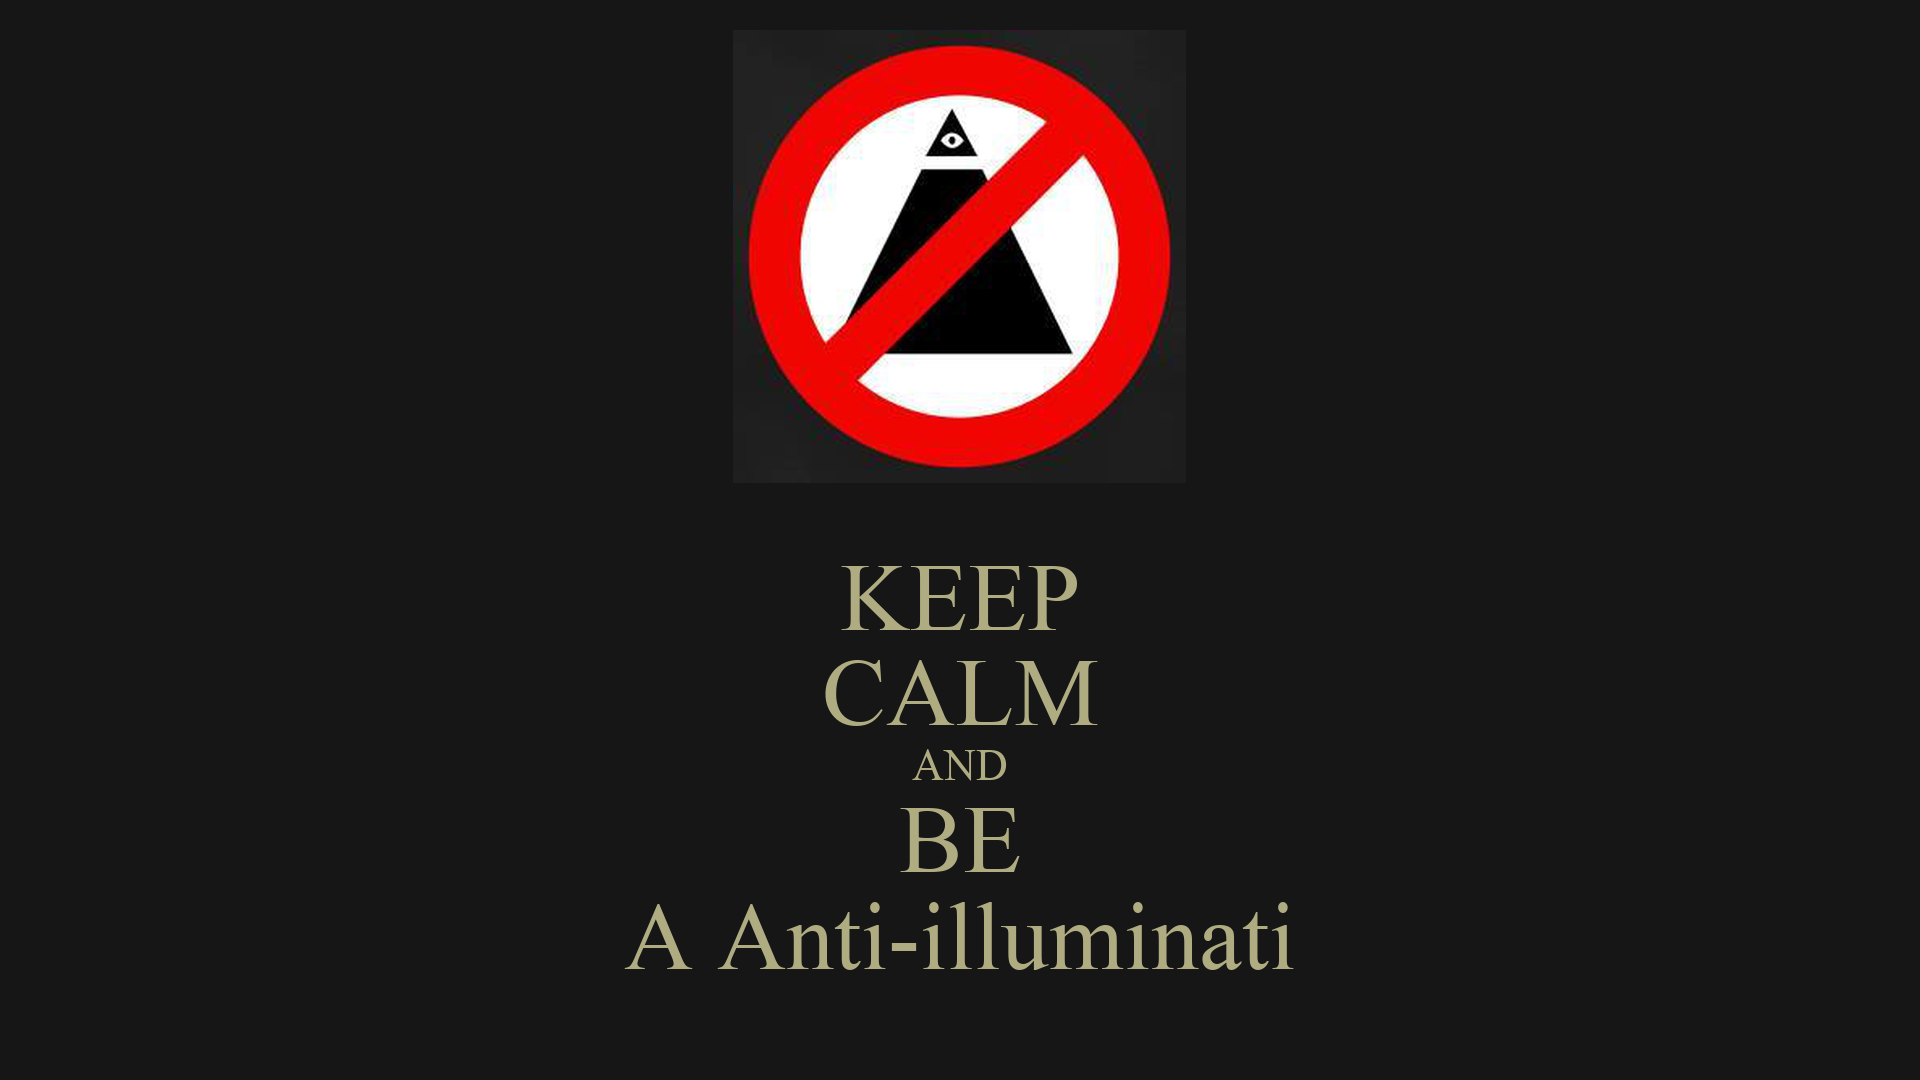 online dating illuminati Cloudromance is the largest east african online dating site that connects kenyan women and men with other singles from kenya set up your free profile today and instantly explore thousands of profiles, browse images, send winks, and start connecting with local singles.